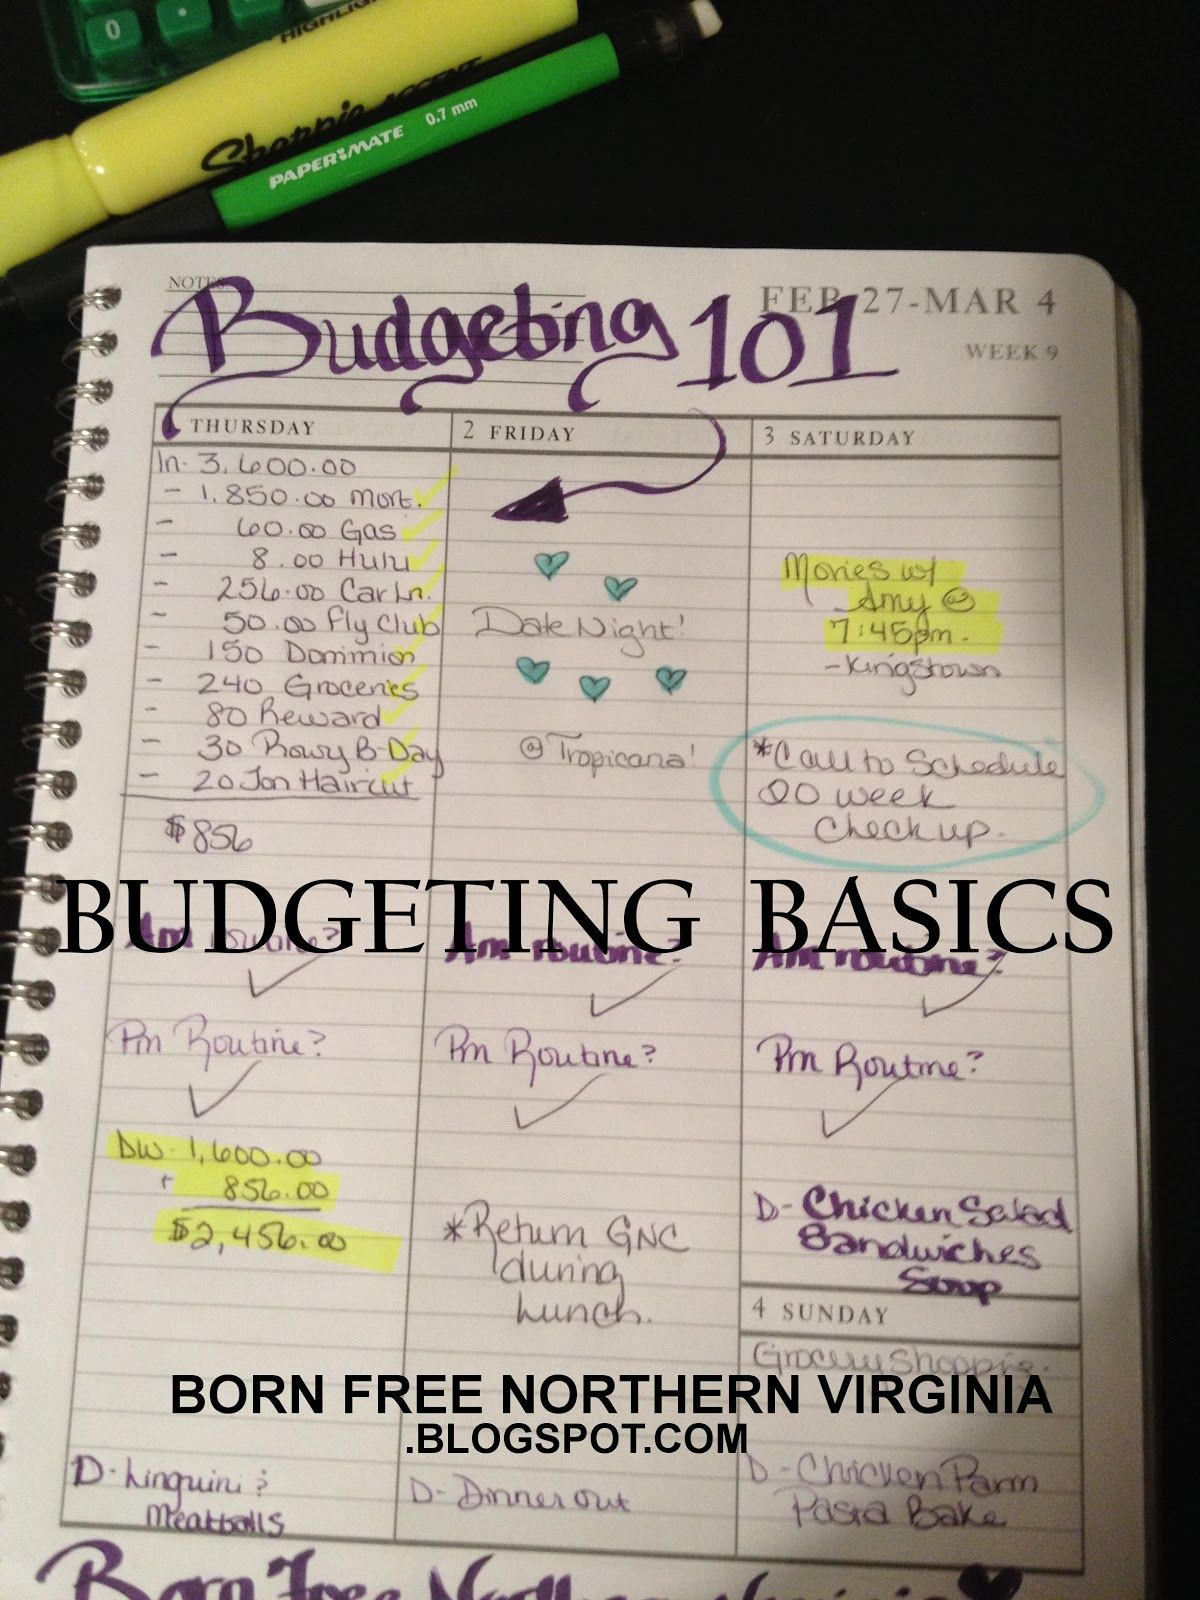 Born Free How To Create A Budget Easy Step By Step